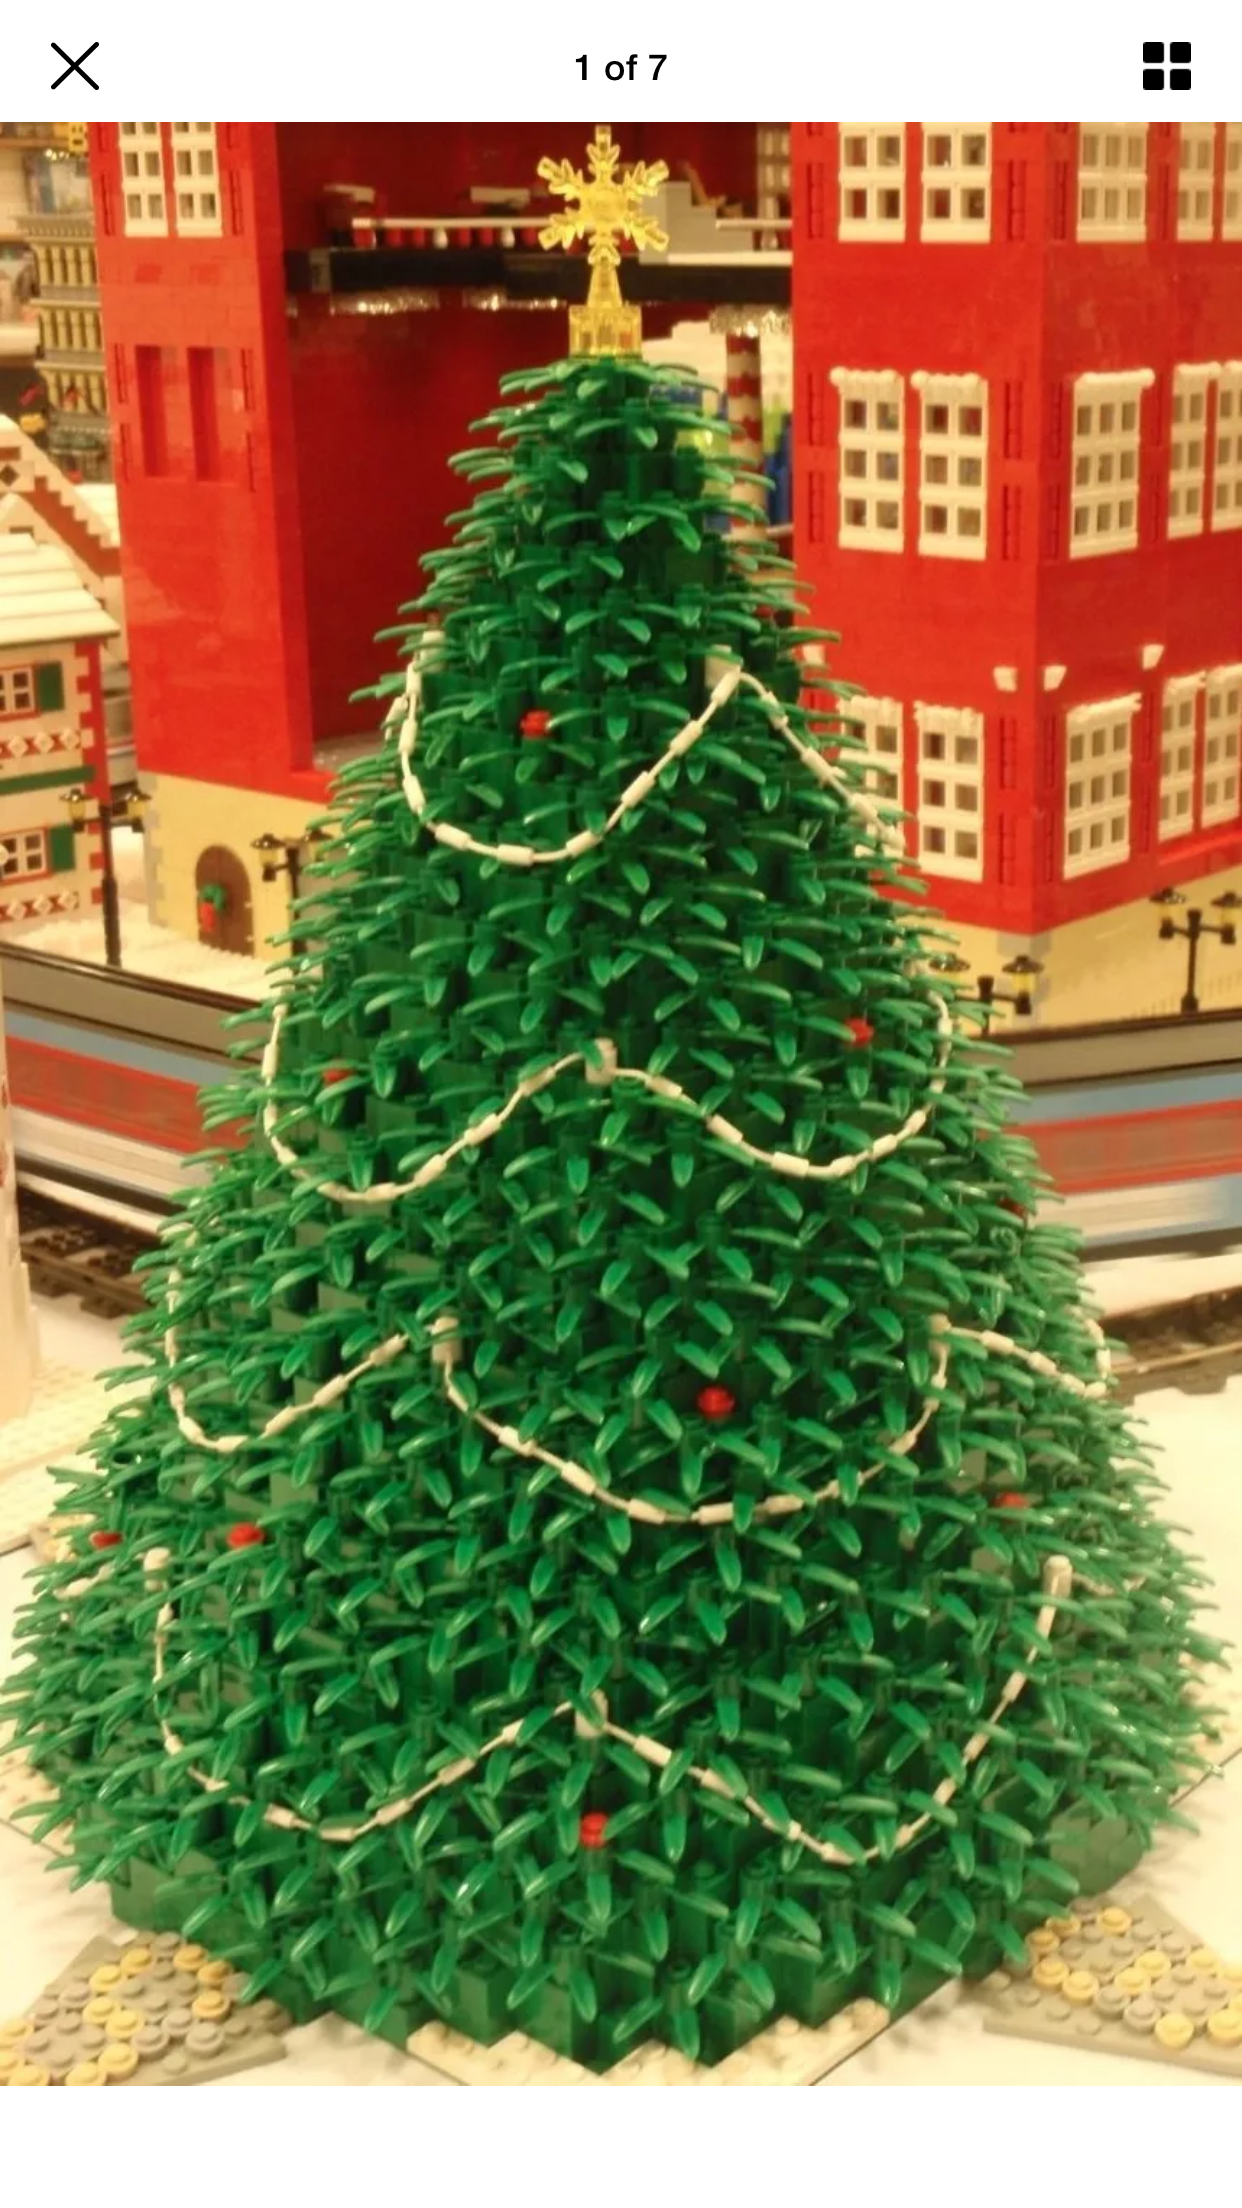 Pin by rose kennedy on legos pinterest lego christmas lego and